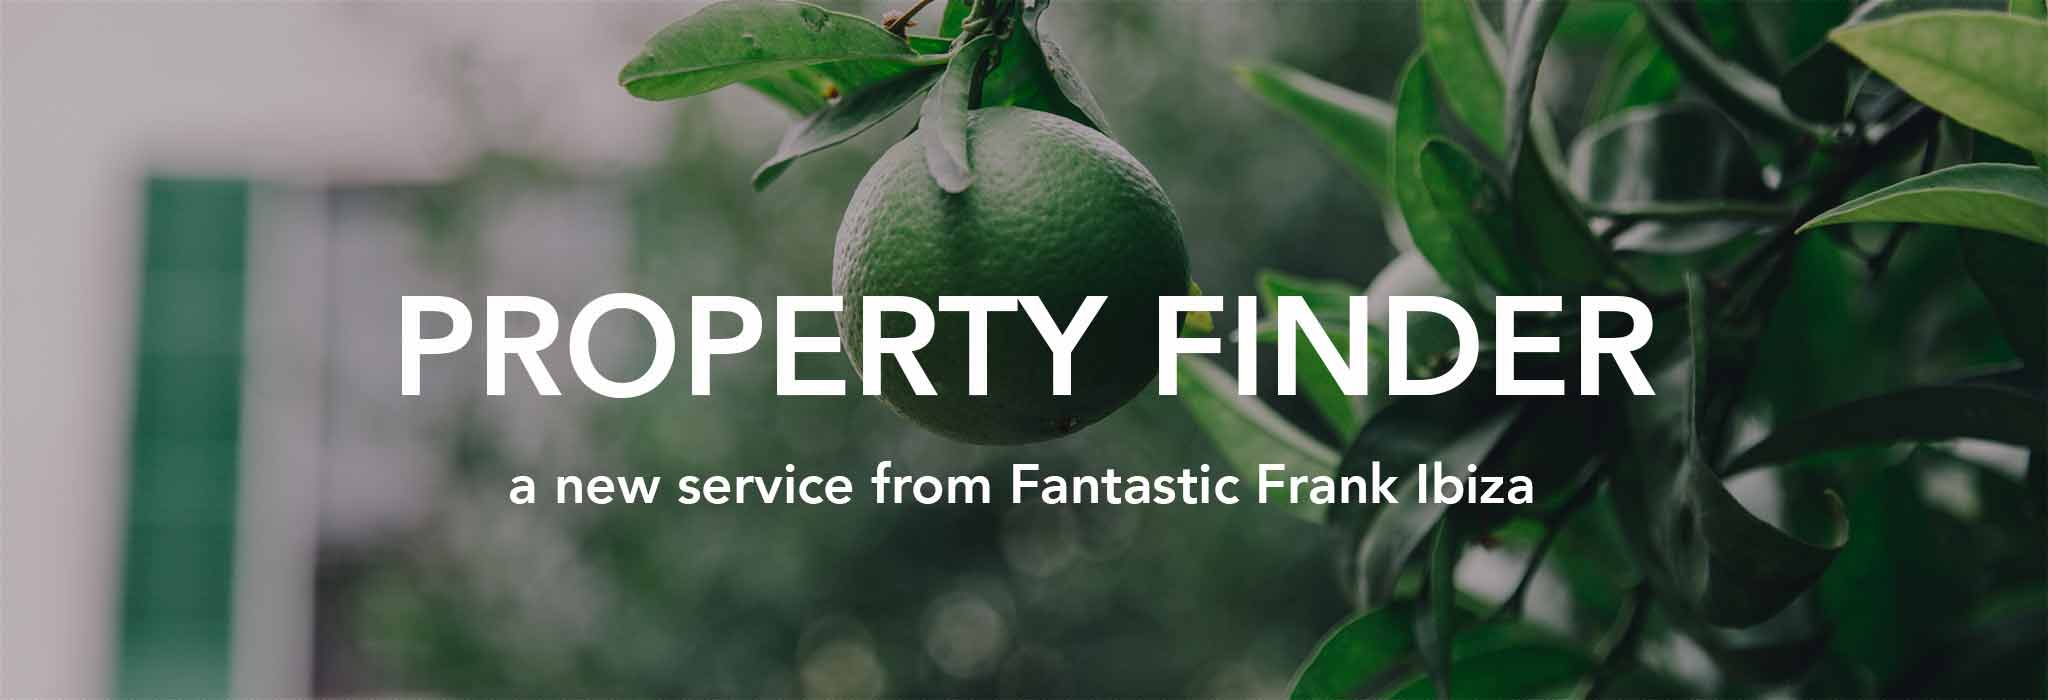 Fantastic Frank Ibiza - Personal property finder